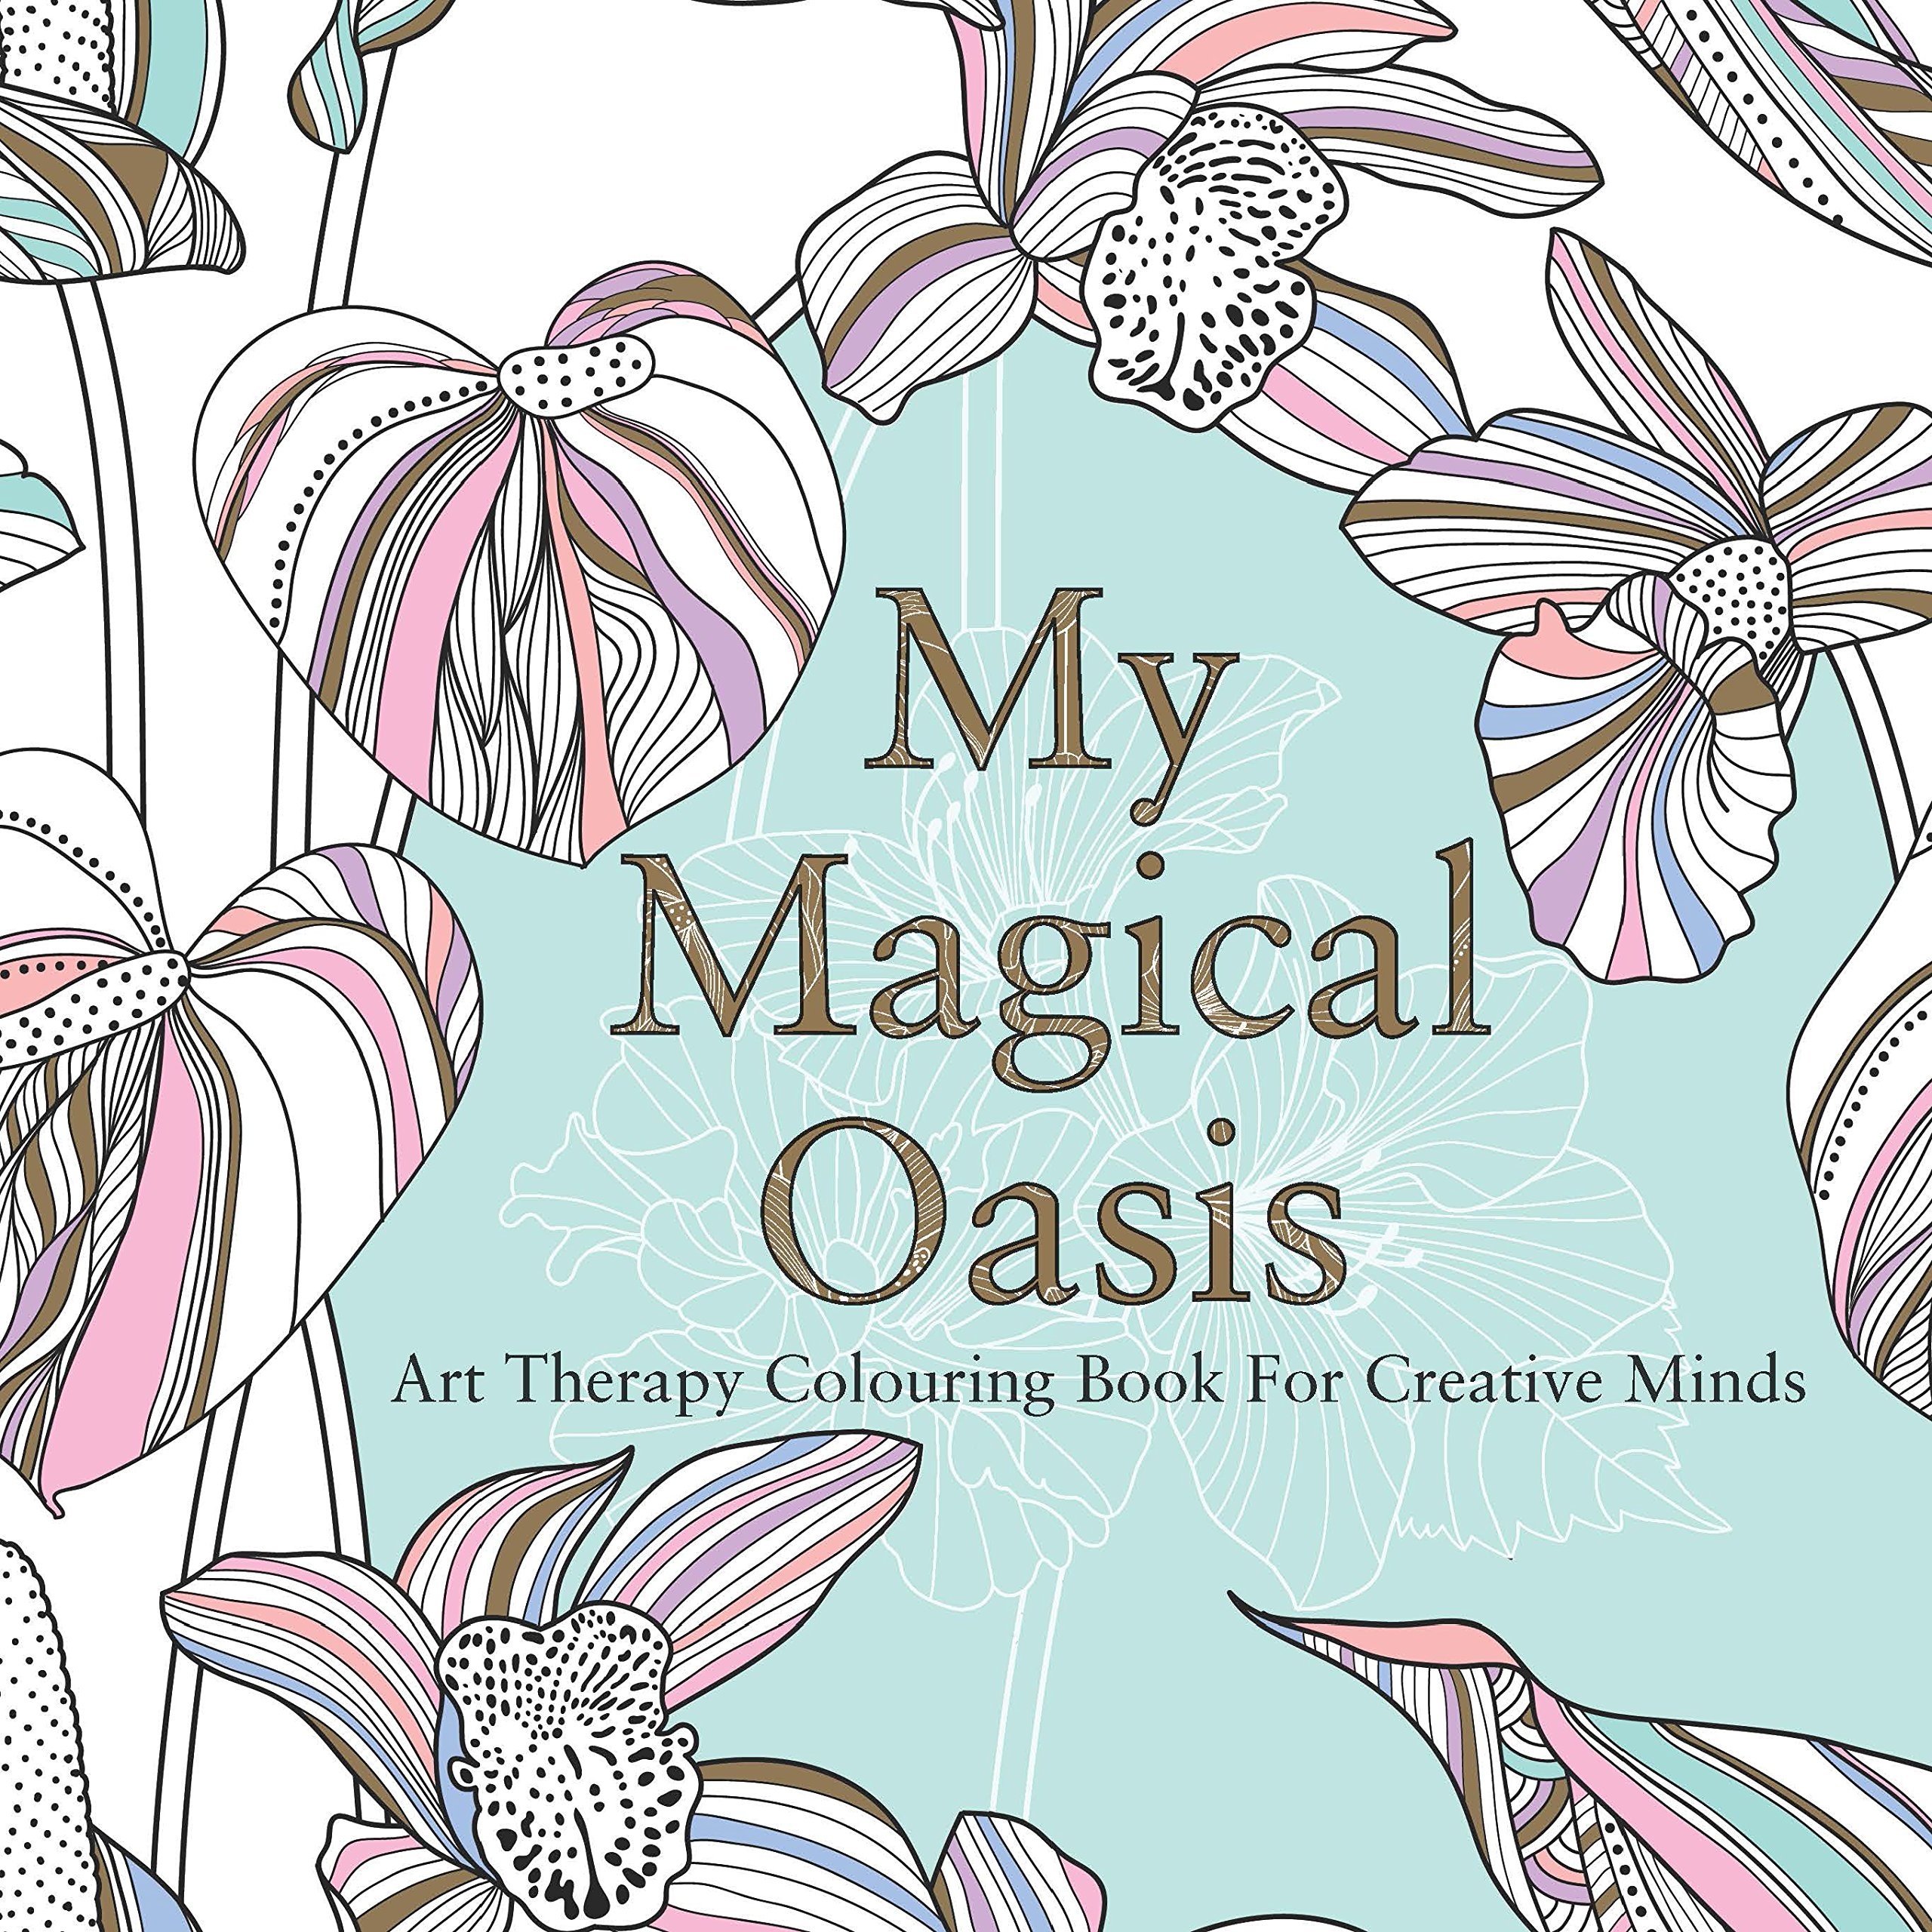 My Magical Oasis Art Therapy Colouring Book For Creative Minds Amazoncouk Eglantine De La Fontaine Various 9780859655354 Books